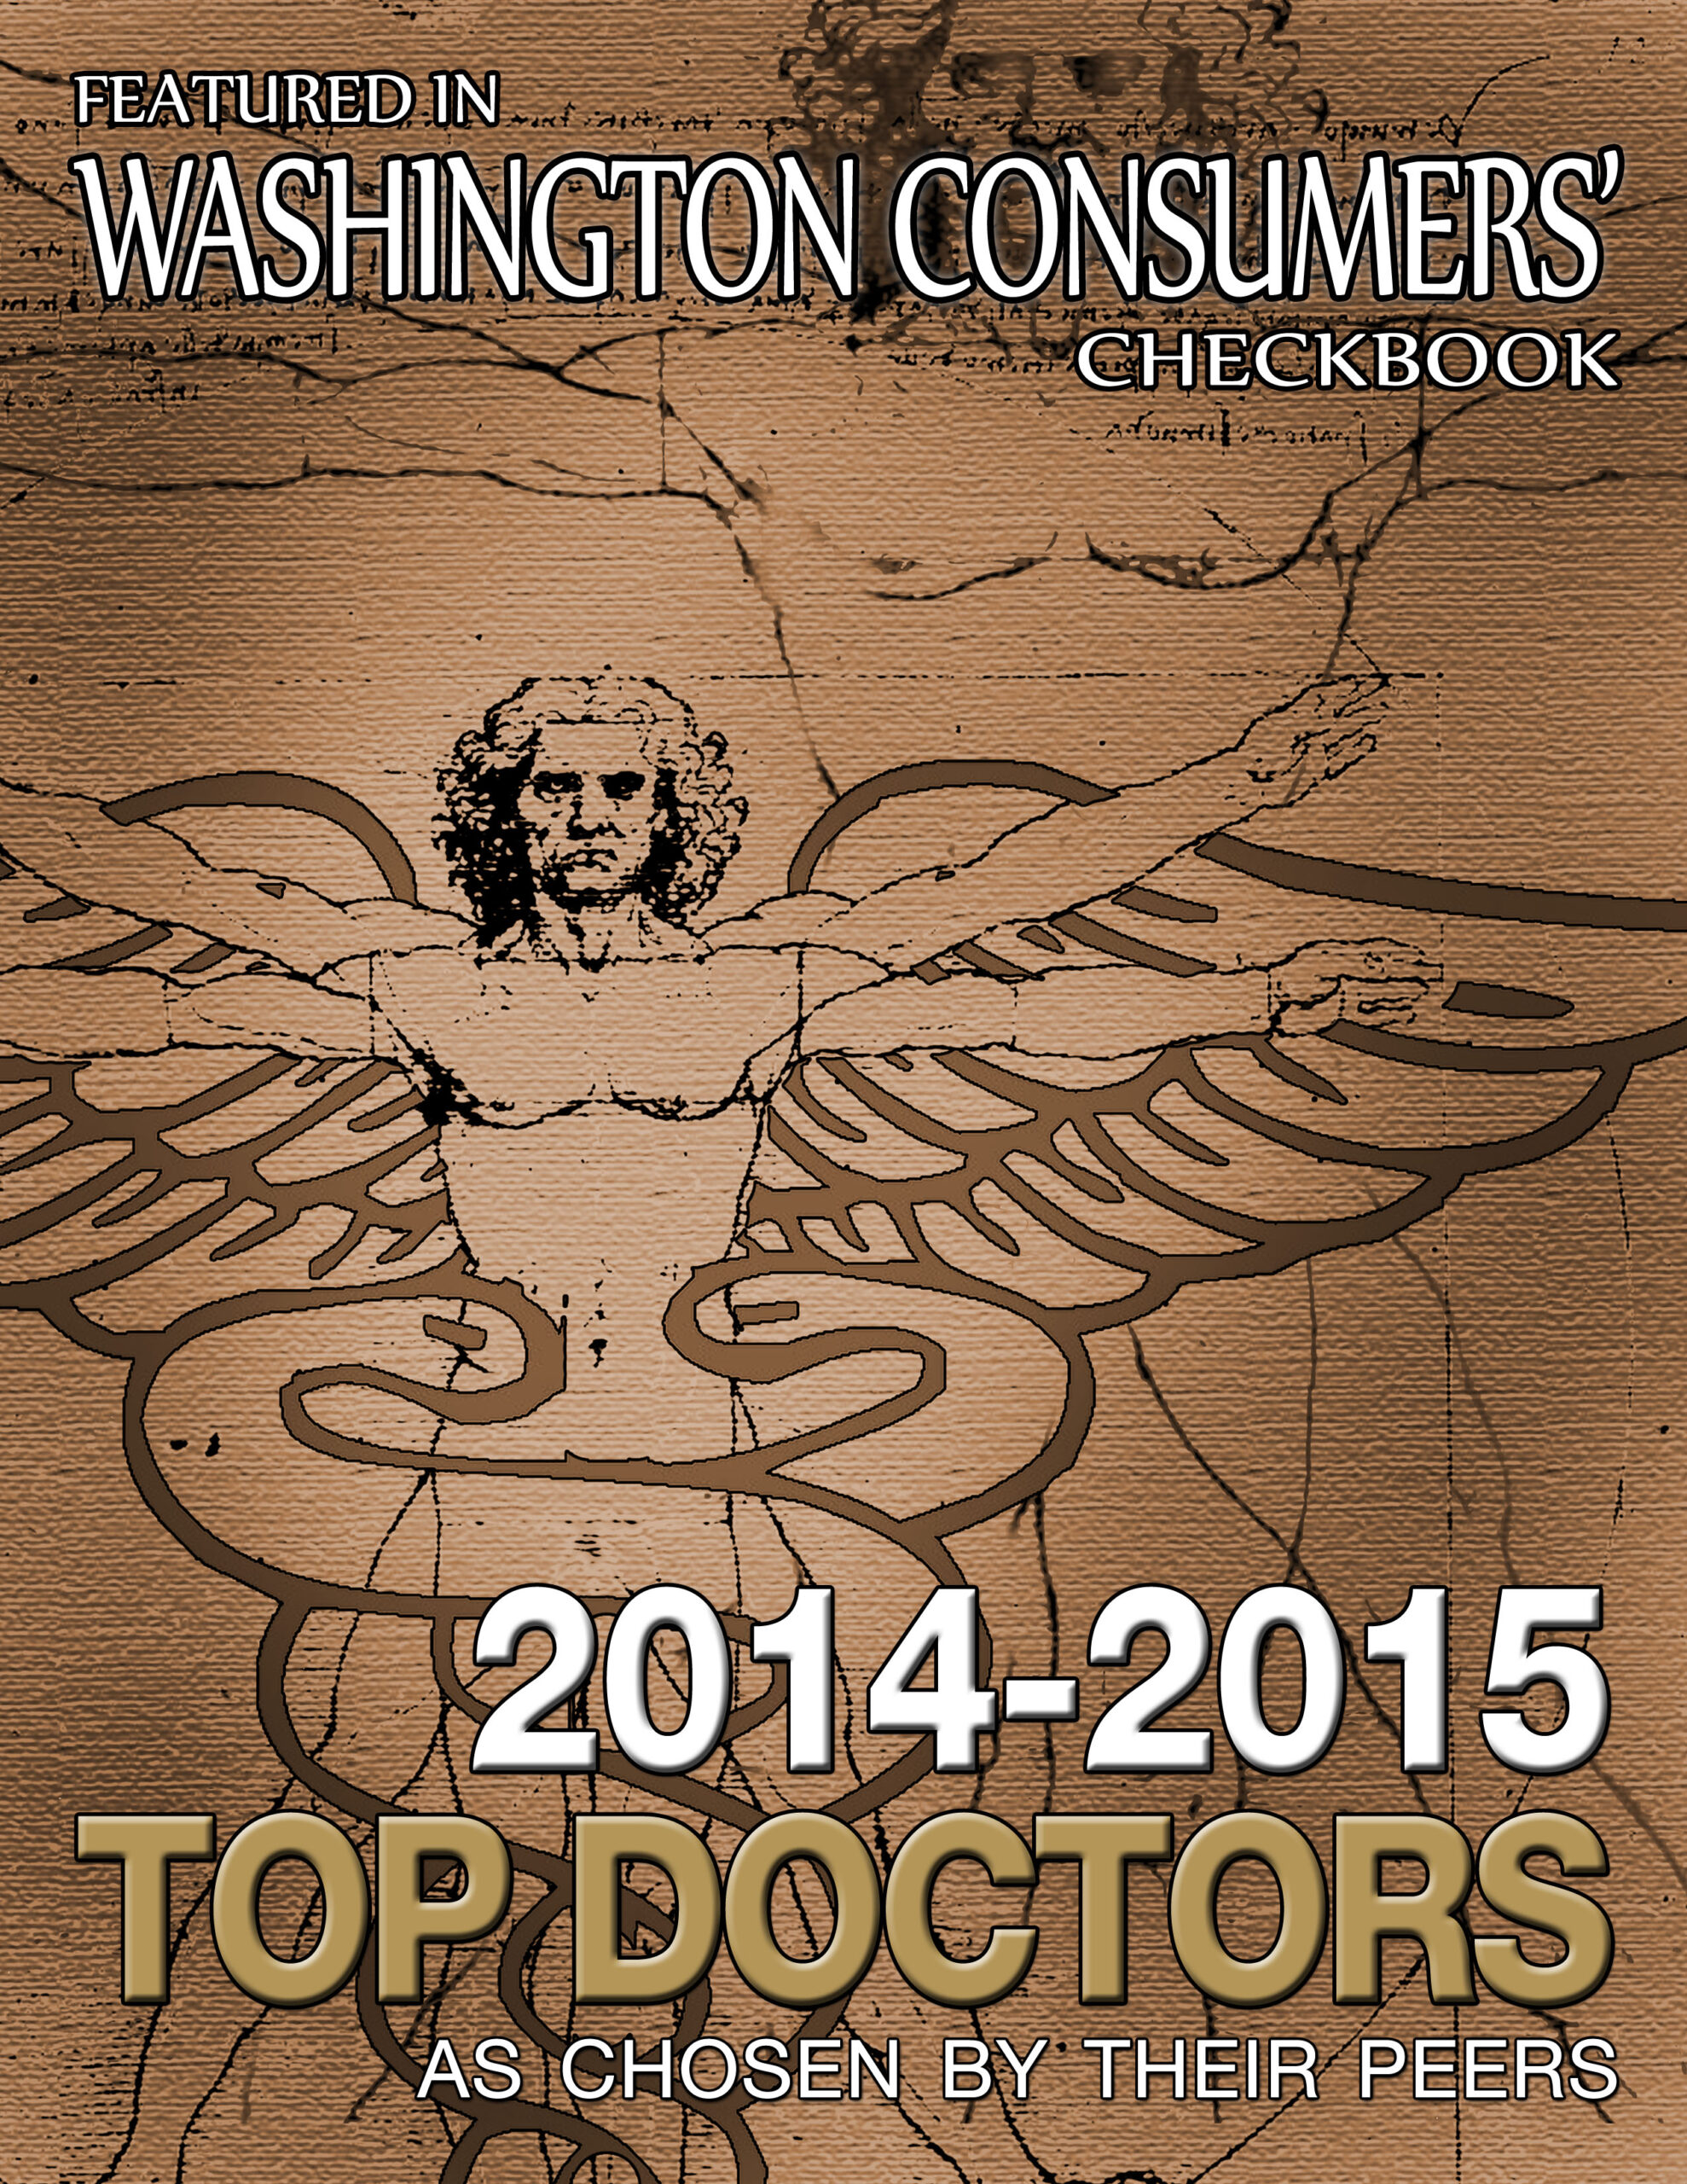 Graphic saying featured in Washington Consumers' Checkbook 2014-2015 Top Doctors as chosen by their peers